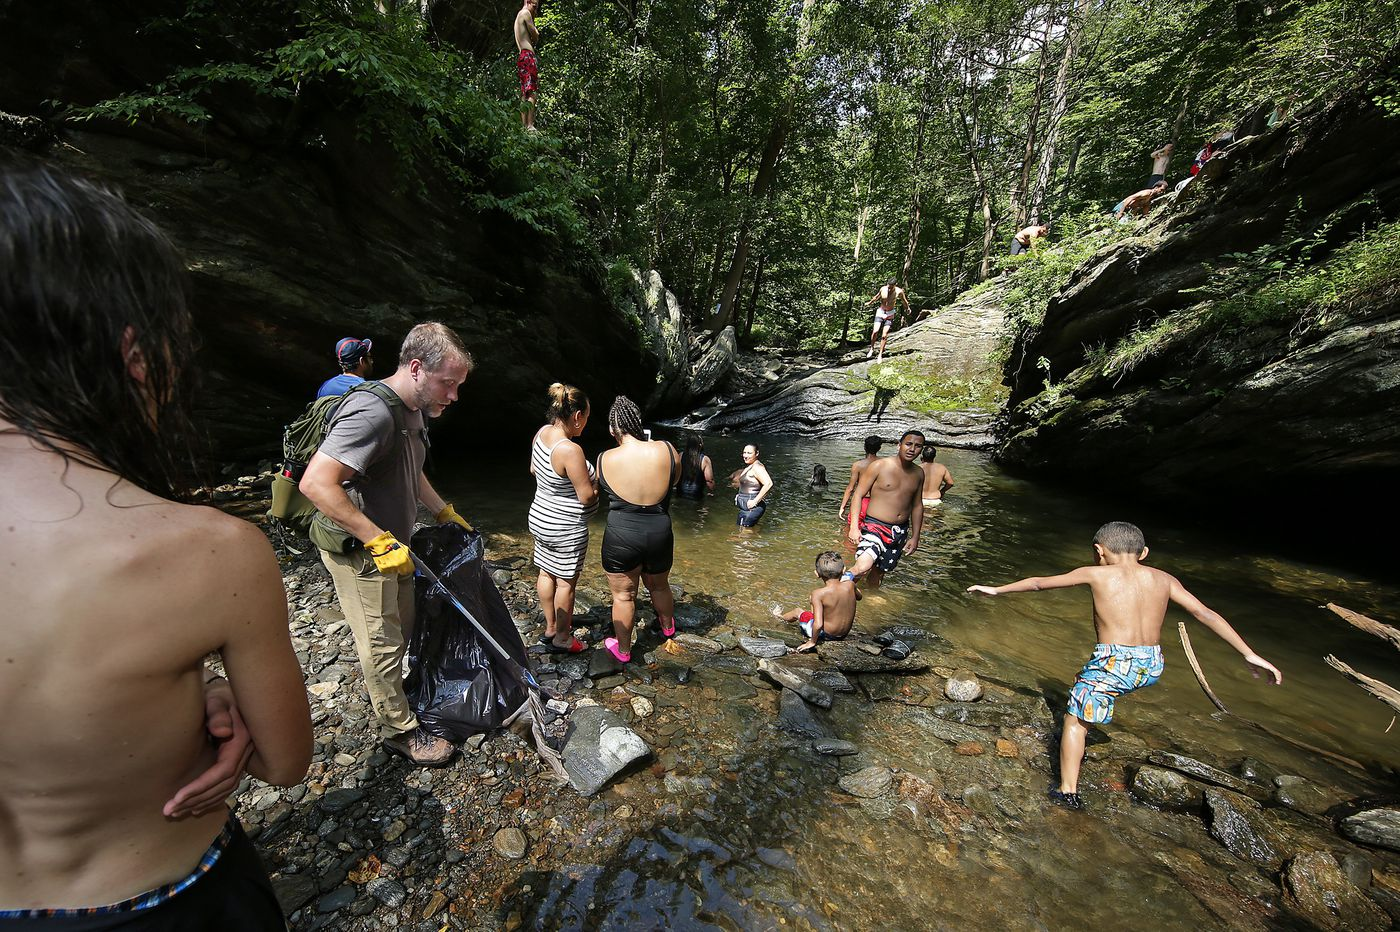 Philadelphia's Wissahickon is slammed with millions of visitors, increasing trash, noise, risks